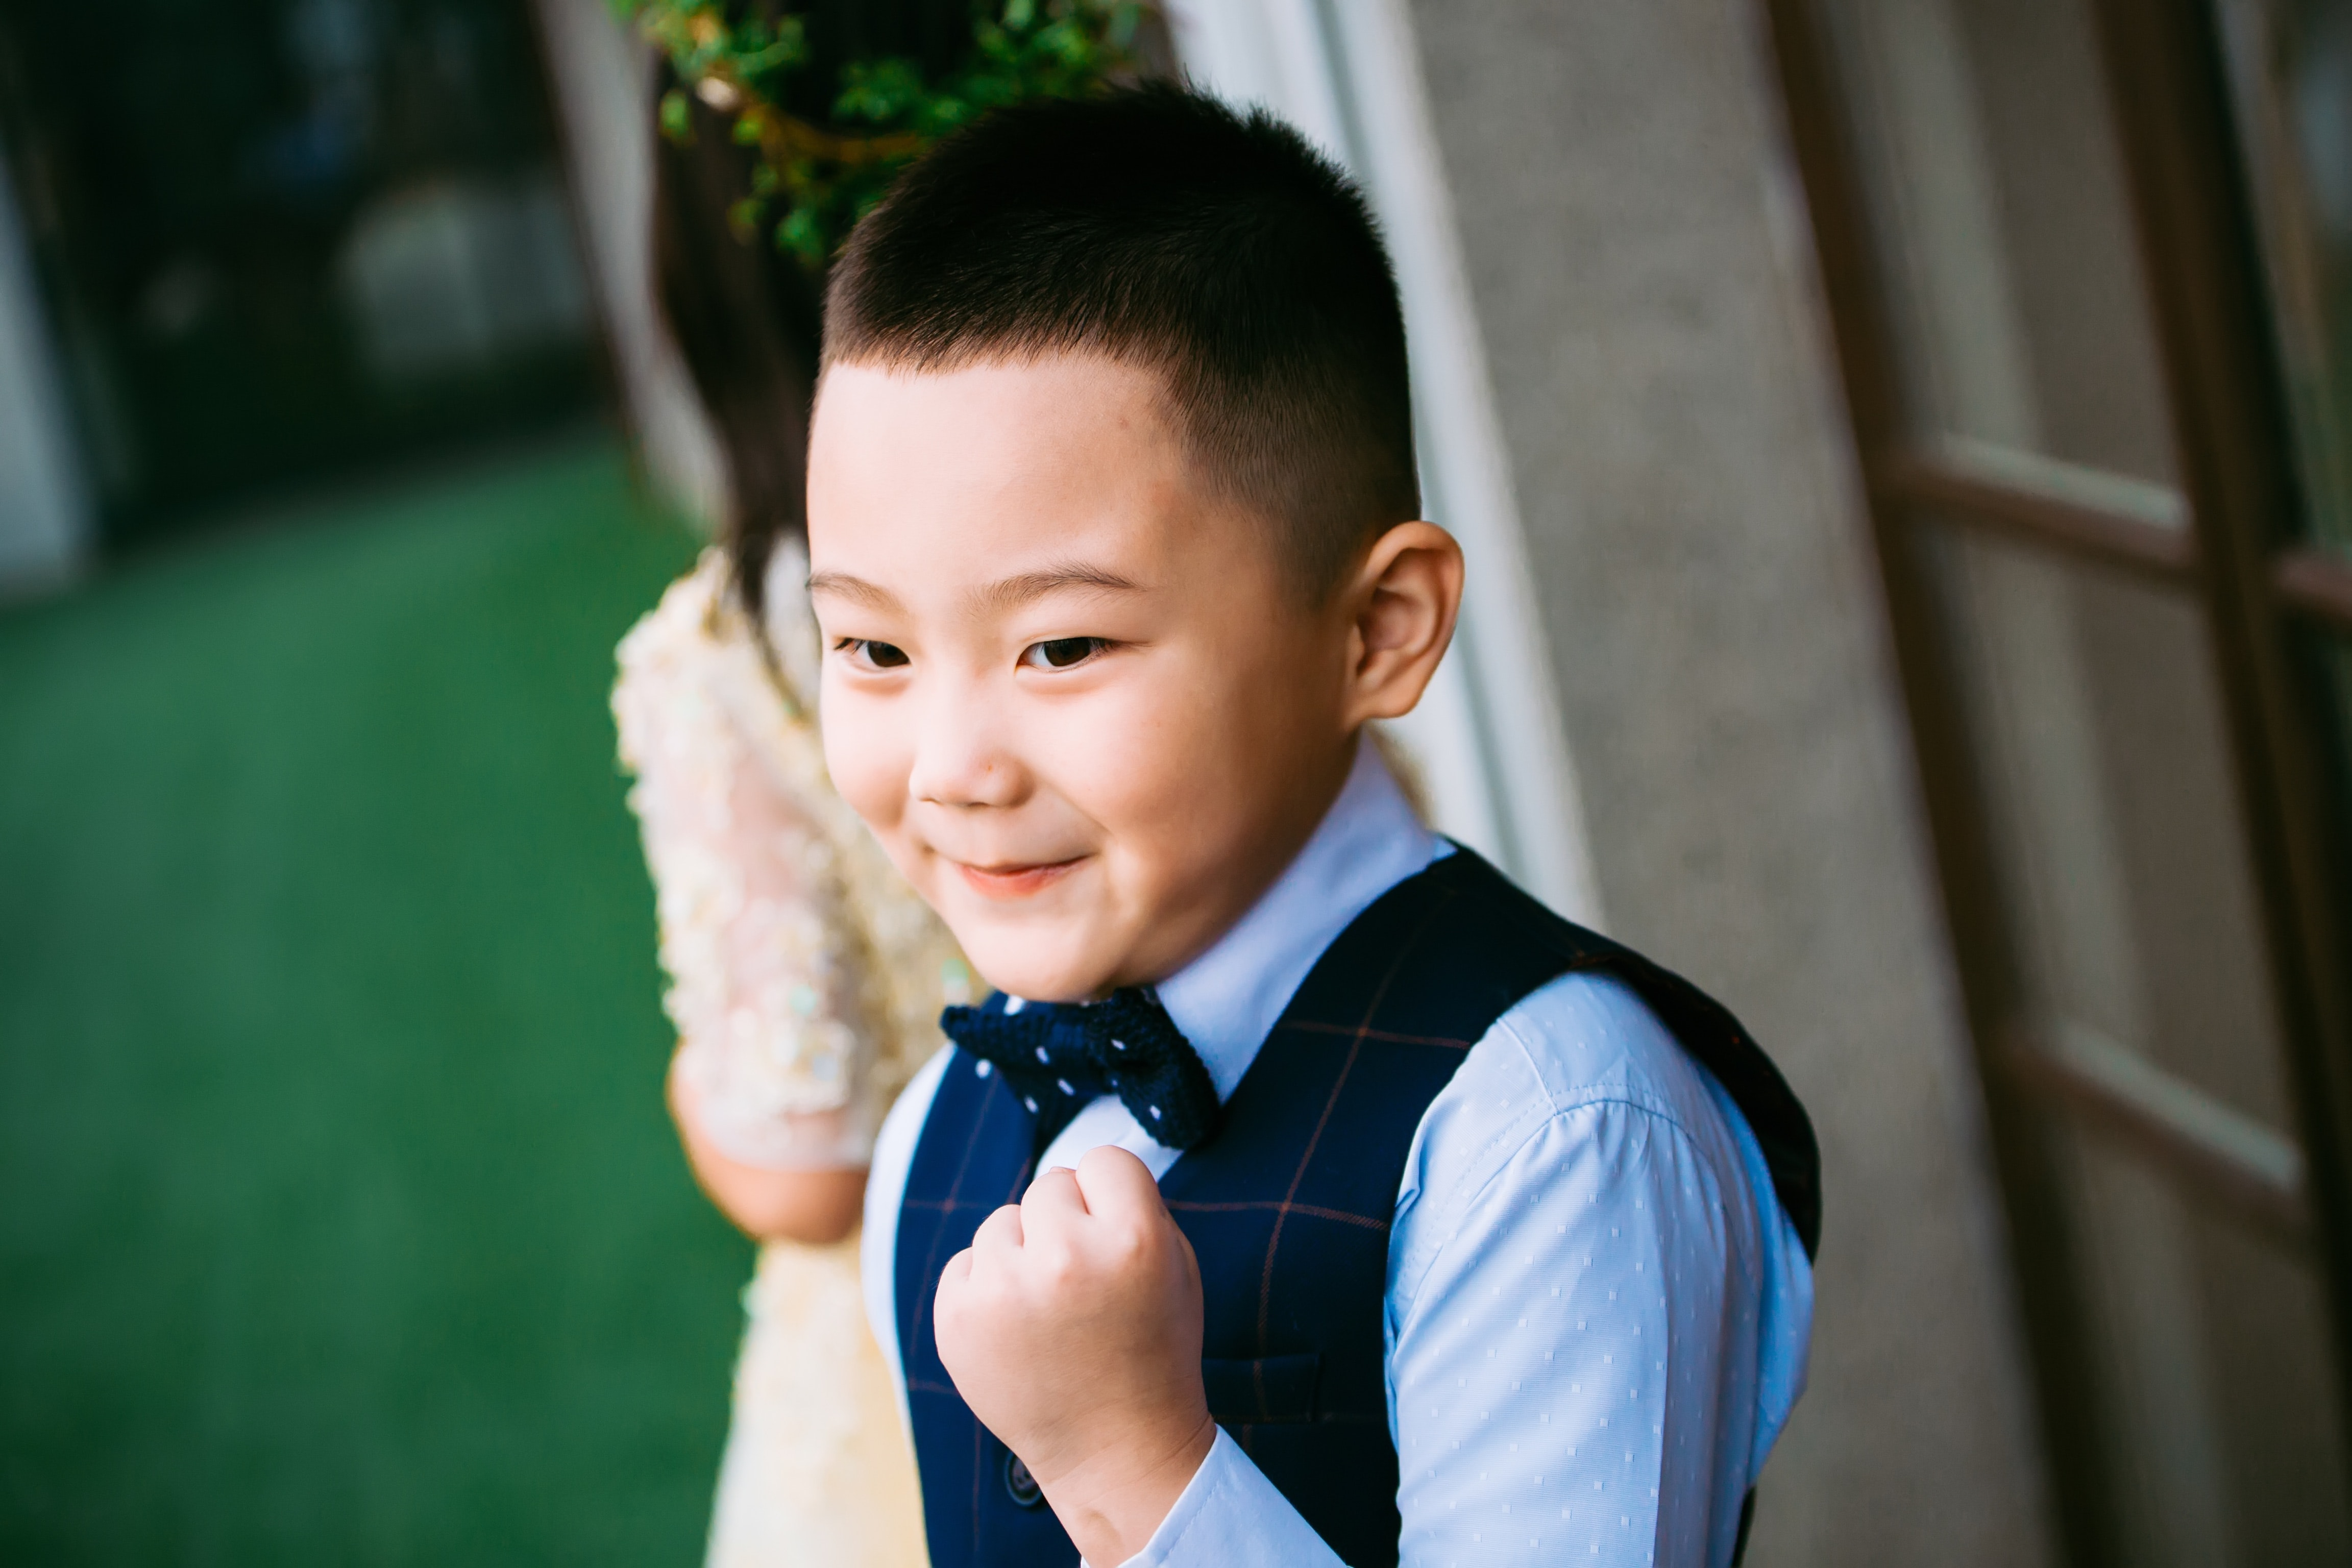 A boy in a waistcoat and bowtie is seen smiling with his fist clenched.